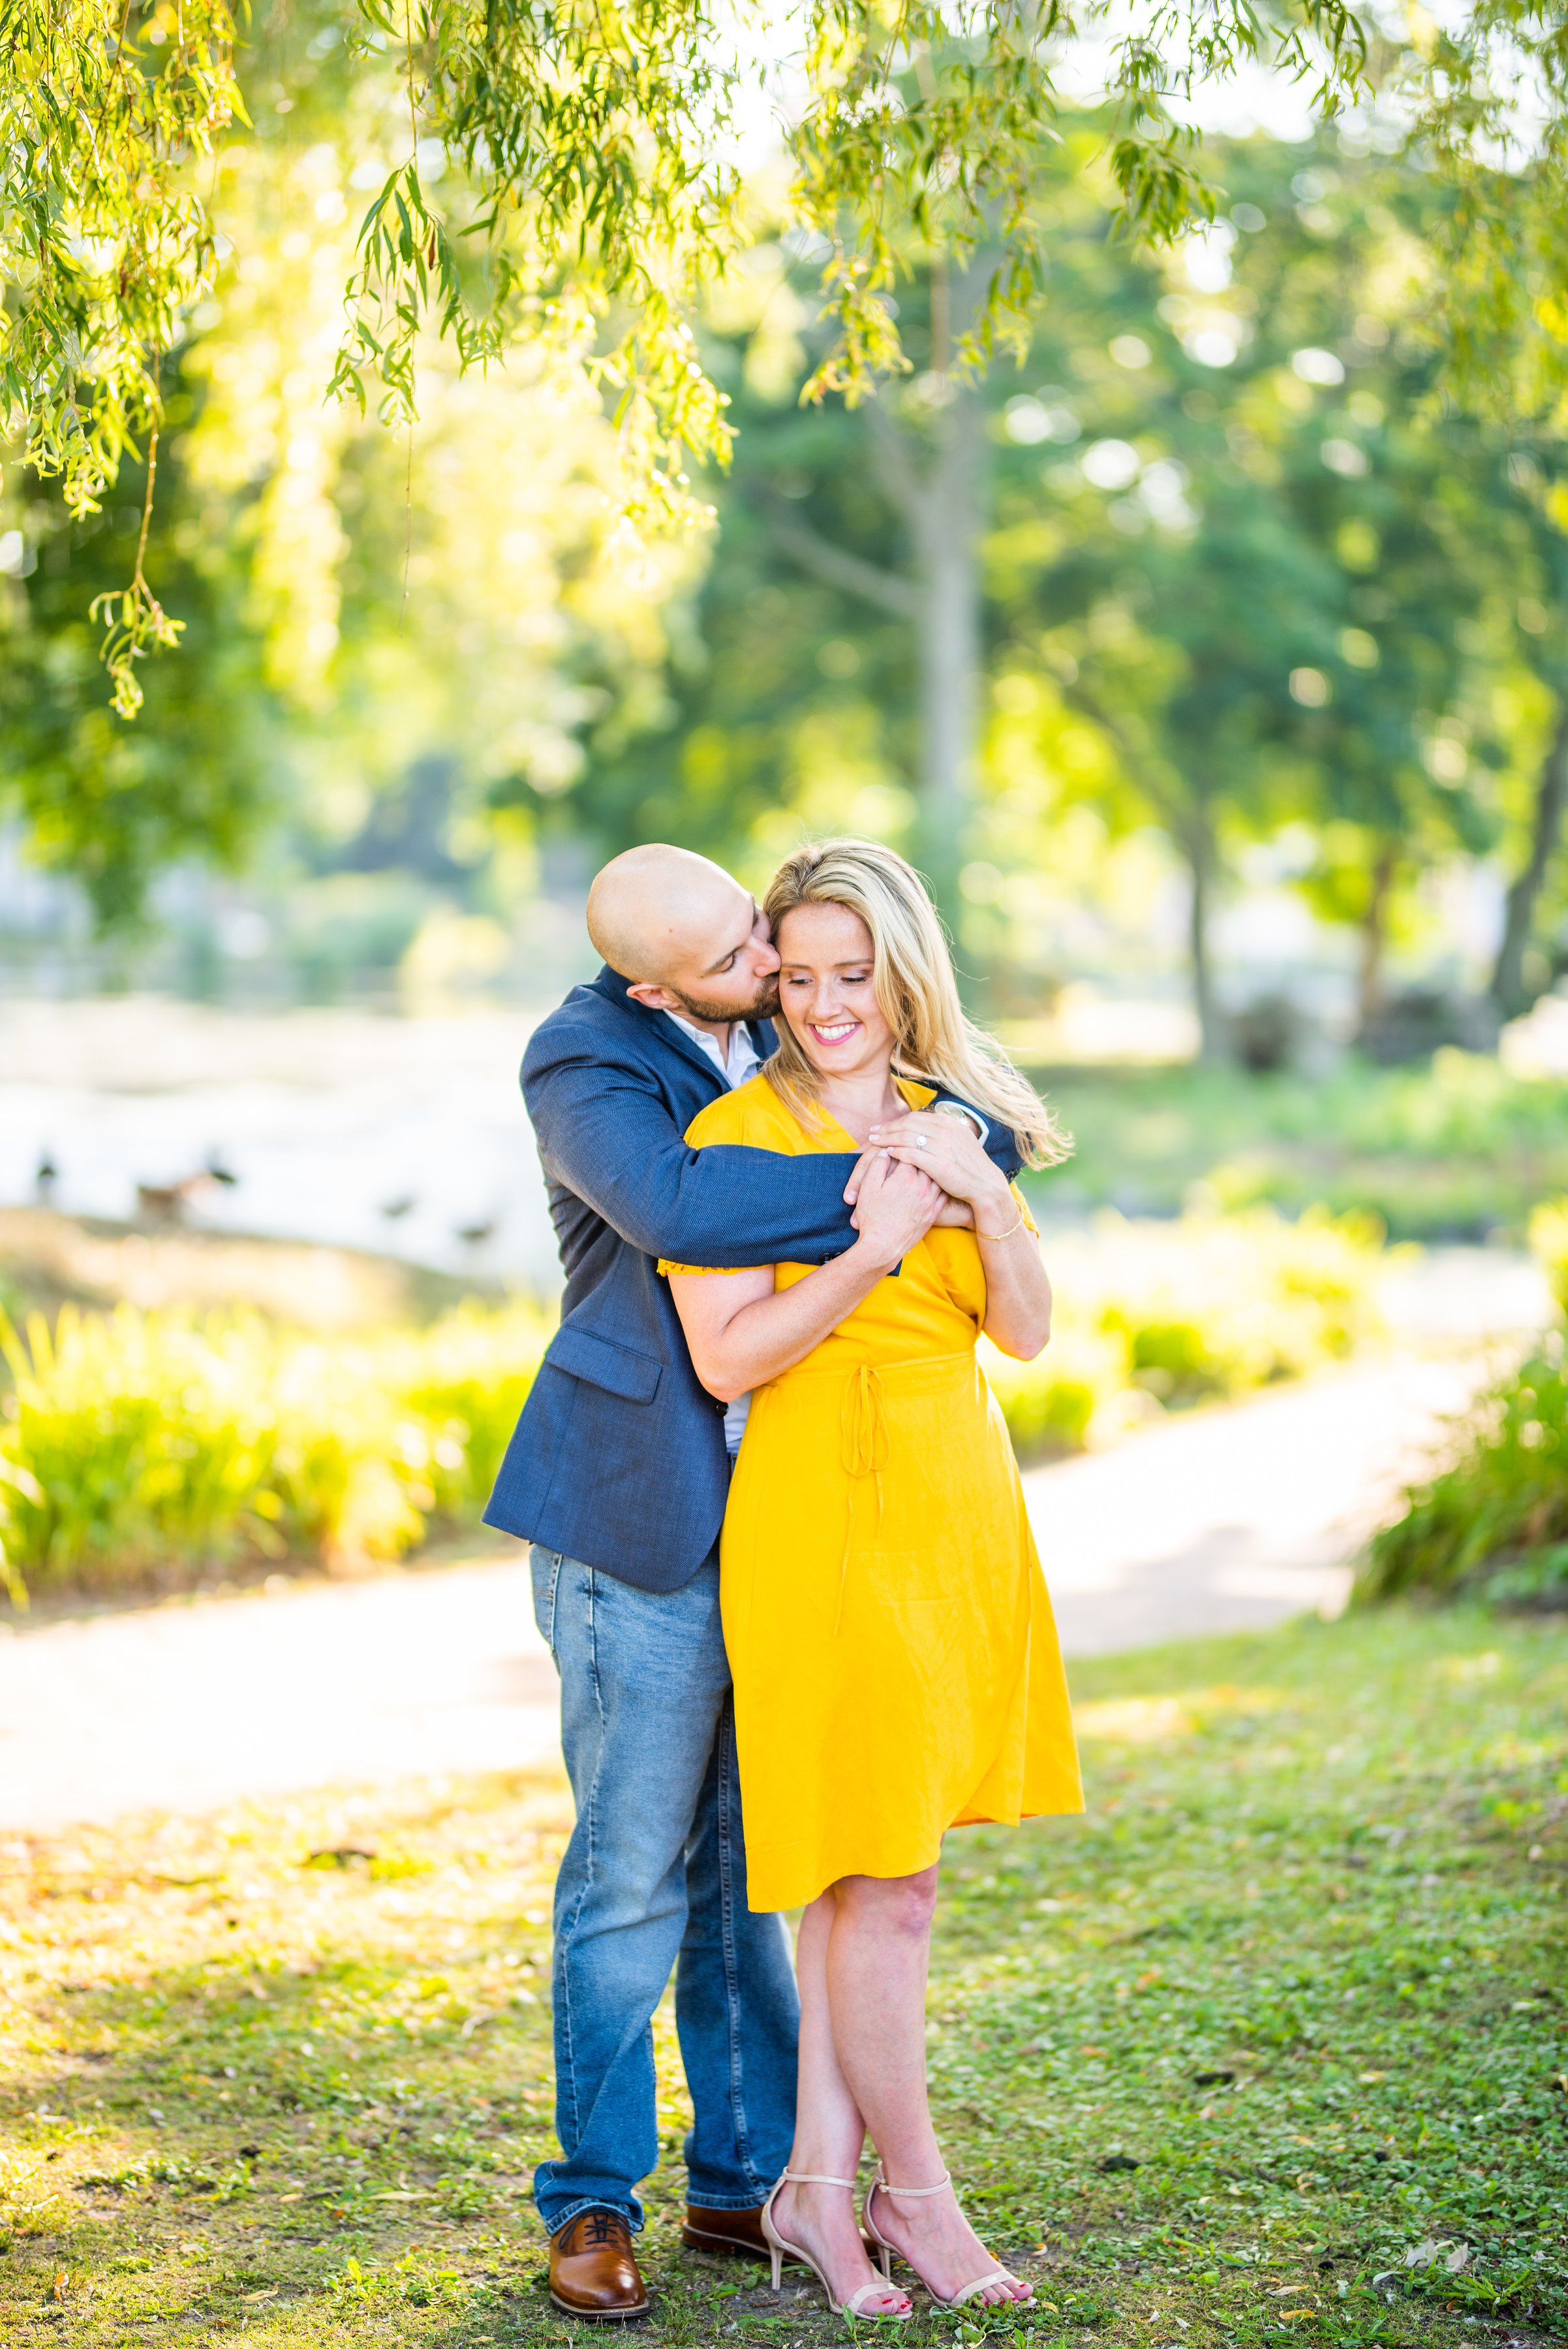 Hecksher Park Engagement Shoot | Long Island Wedding Photographer | Long Island Wedding Photographers11